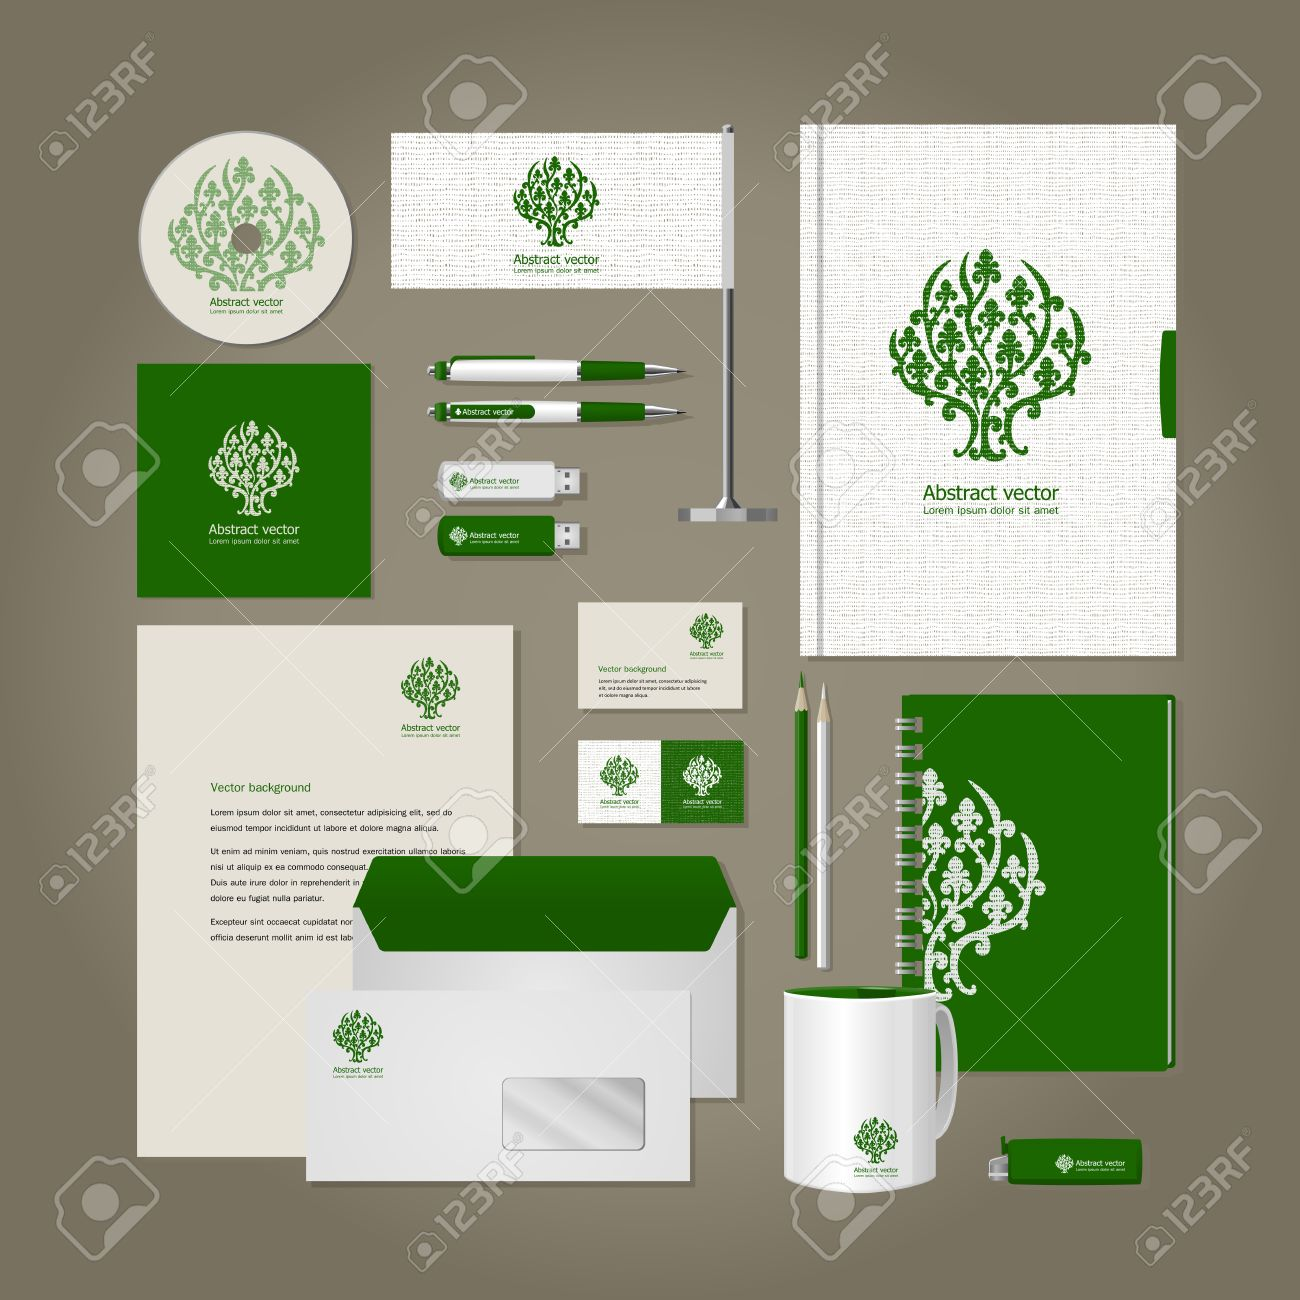 Candle business cards gallery free business cards tree business cards image collections free business cards corporate style tree business cards a disk a magicingreecefo Choice Image